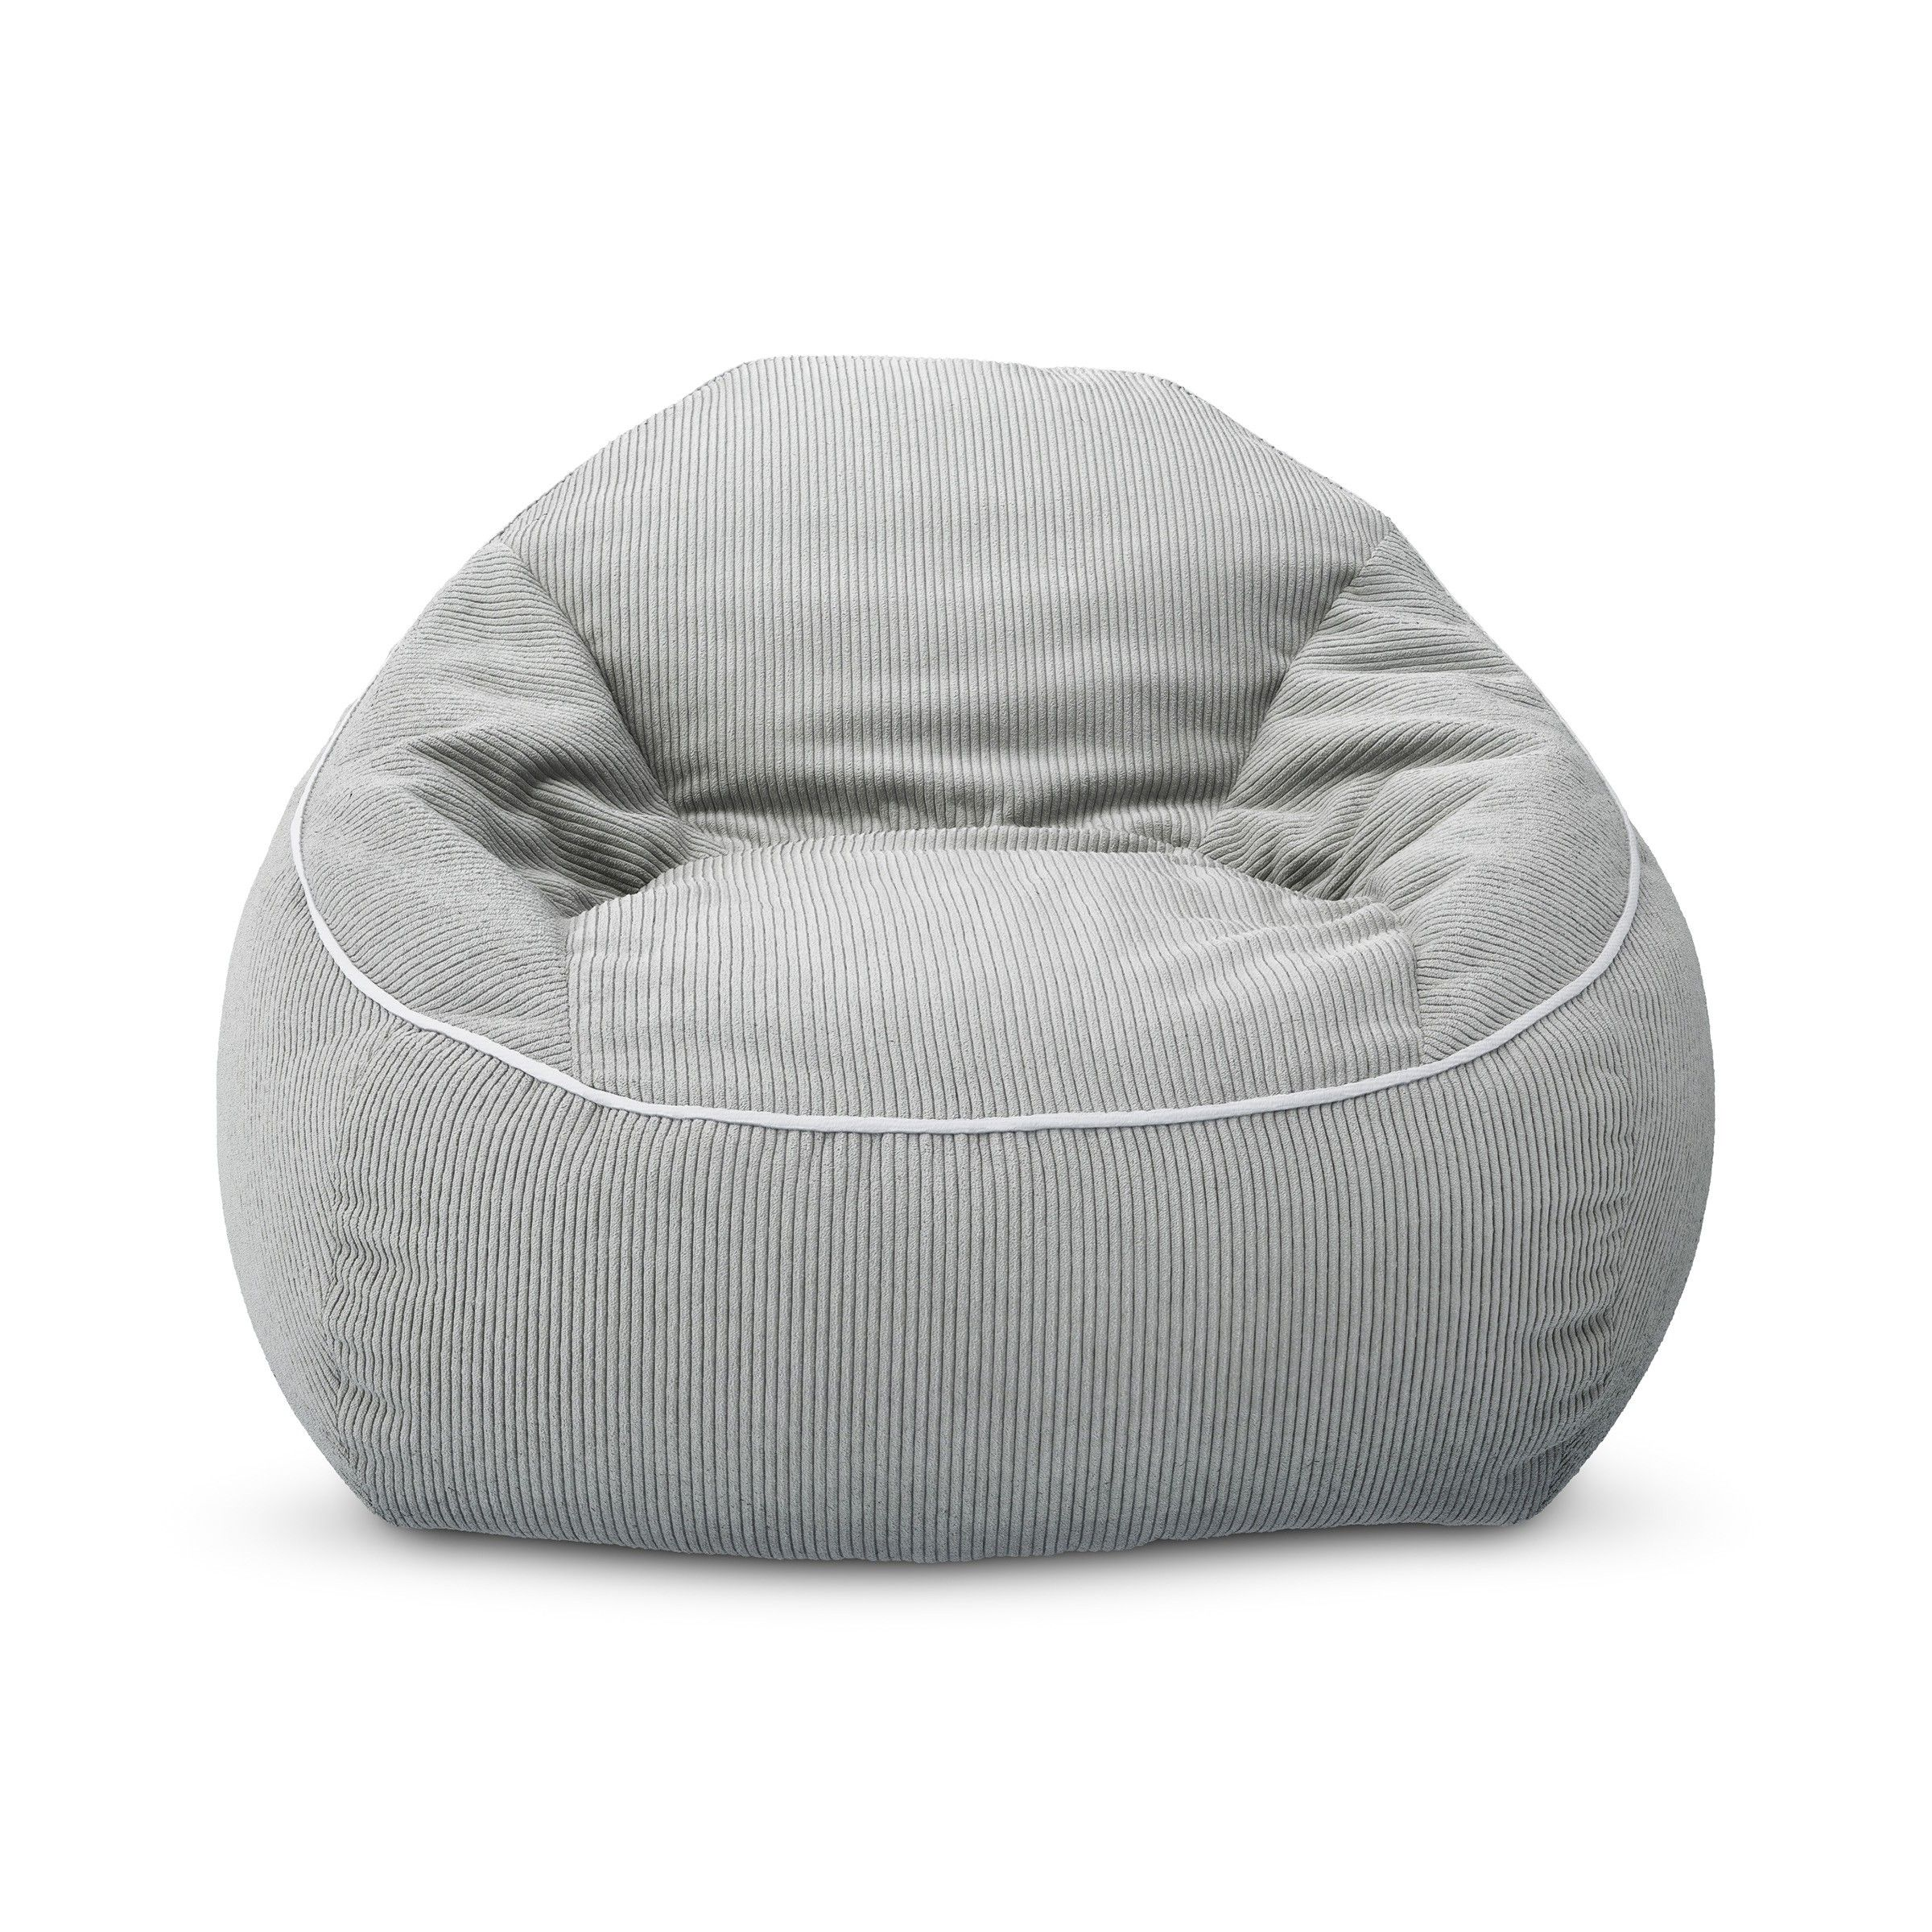 Low Comfy Chairs Xl Corduroy Bean Bag Chair Pillowfort Beanbag Chair